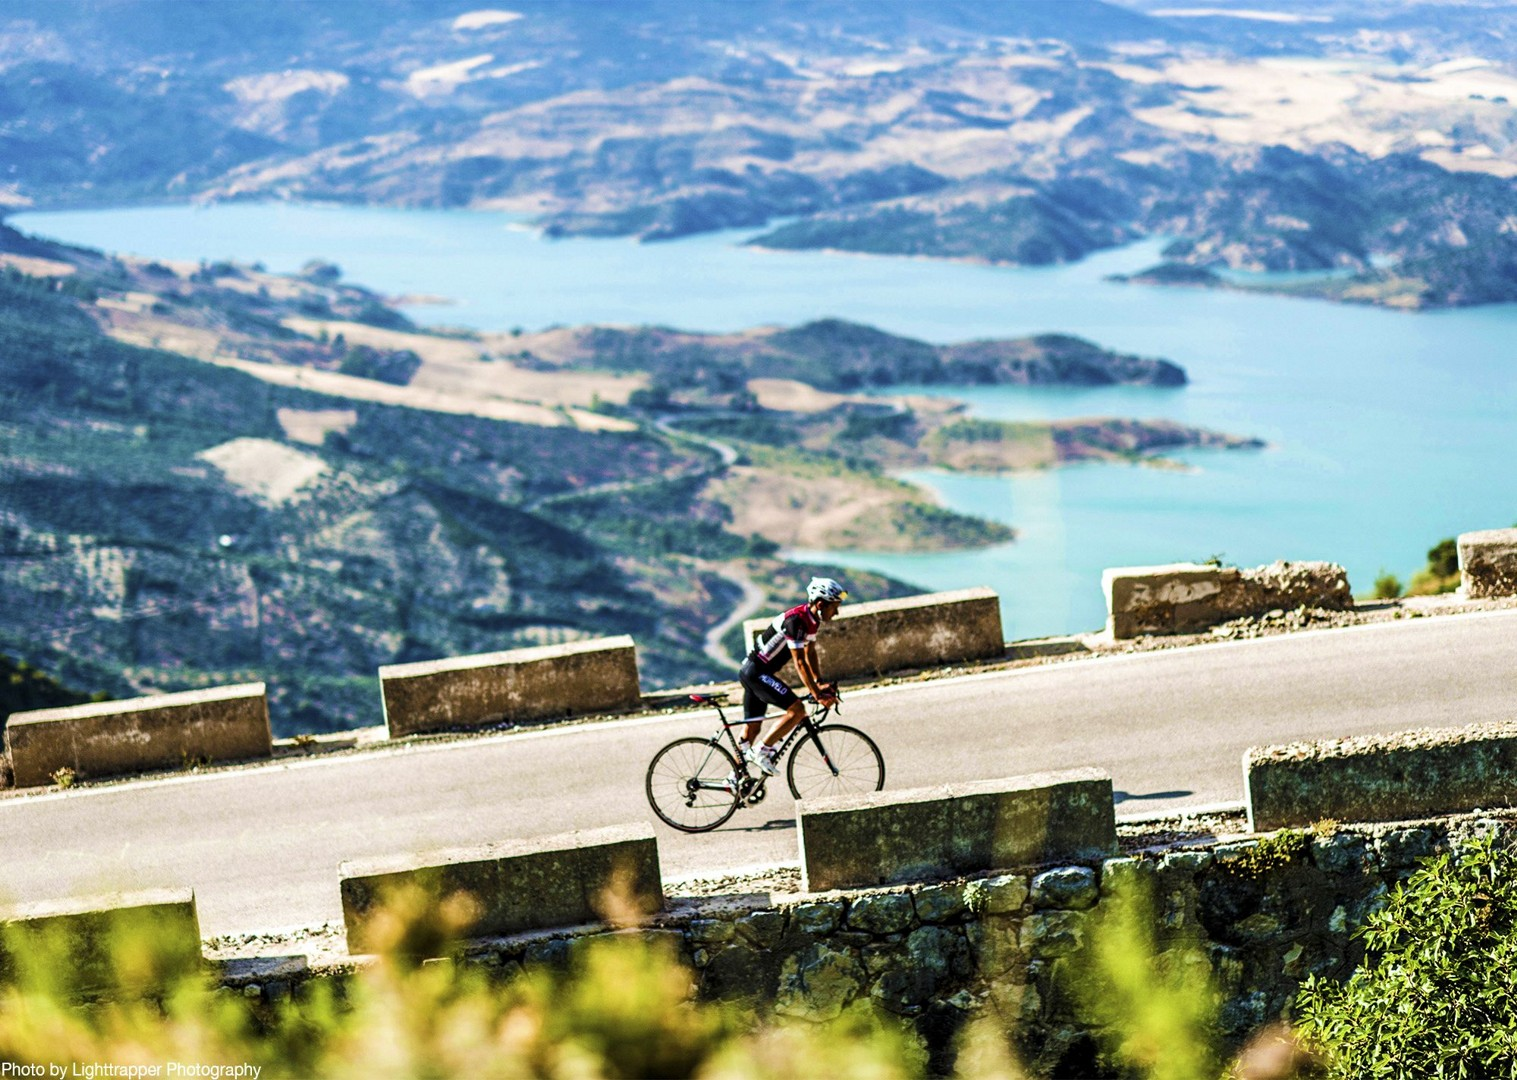 road-cycling-spain-puert-de-las-palomas-self-guided-cycling-tour.jpg - Southern Spain - Andalucia - Los Pueblos Blancos - Self-Guided Road Cycling Holiday - Road Cycling